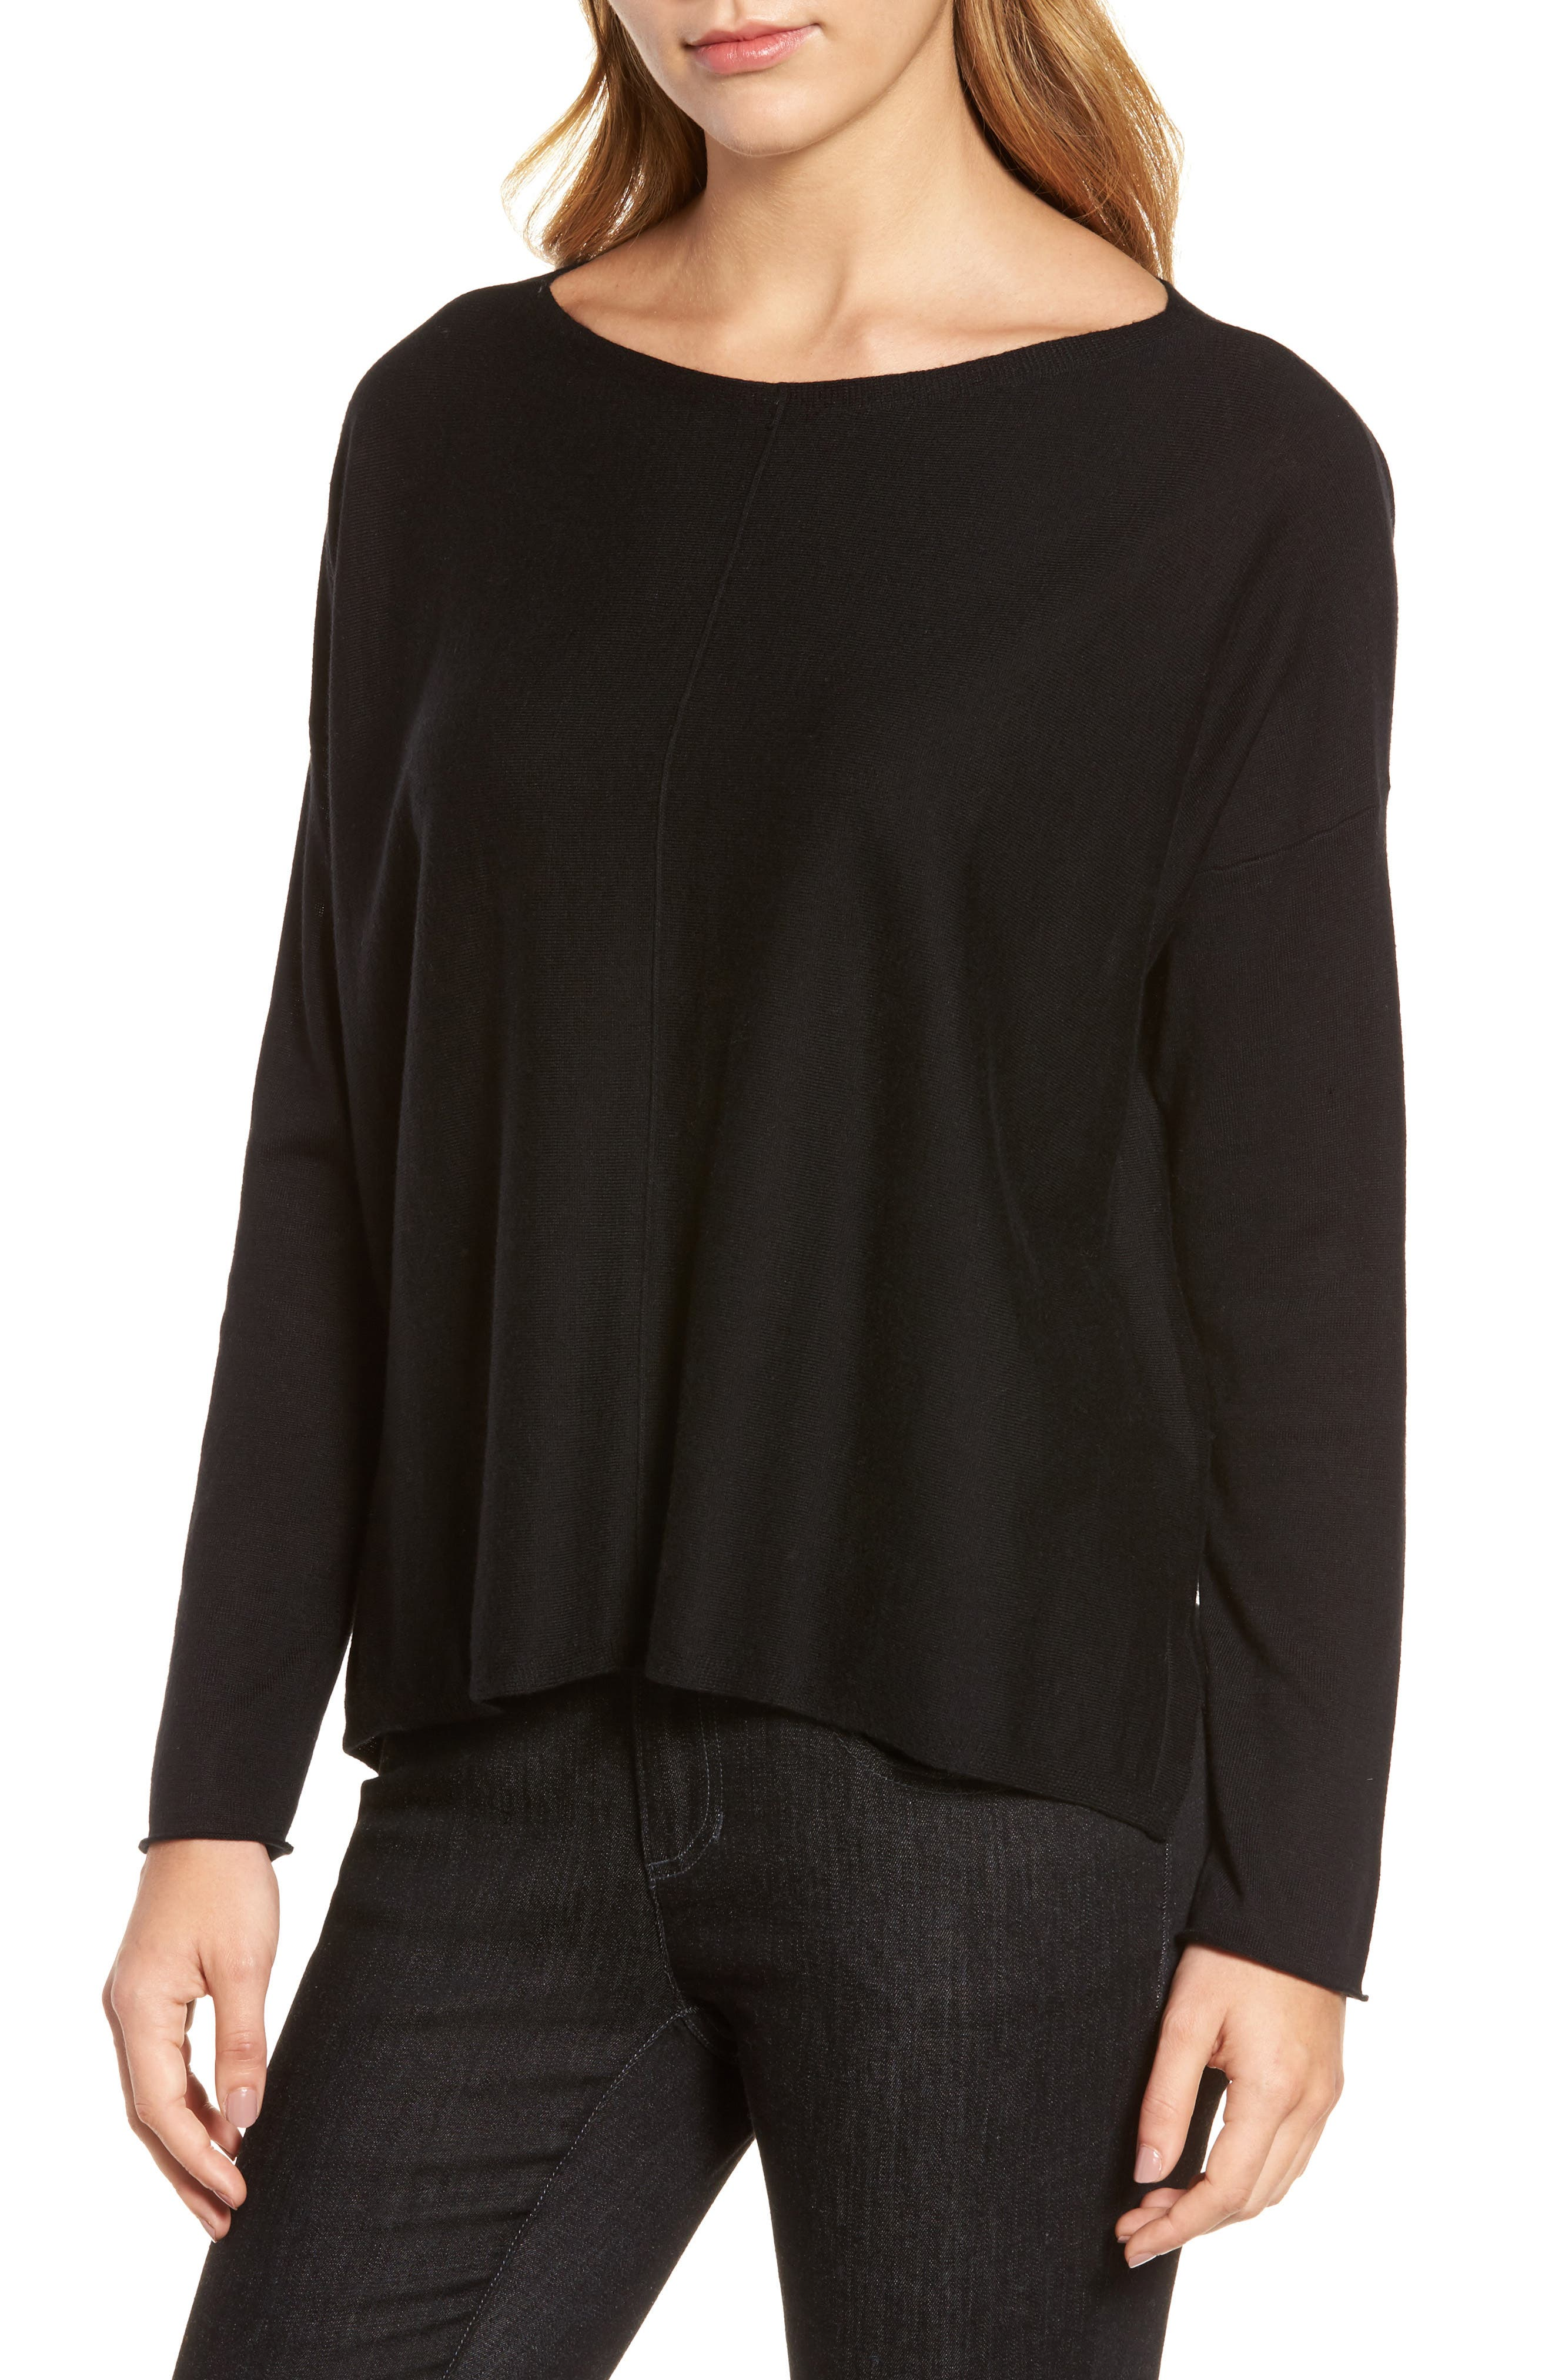 Tencel<sup>®</sup> Lyocell Blend High/Low Sweater,                         Main,                         color, 001